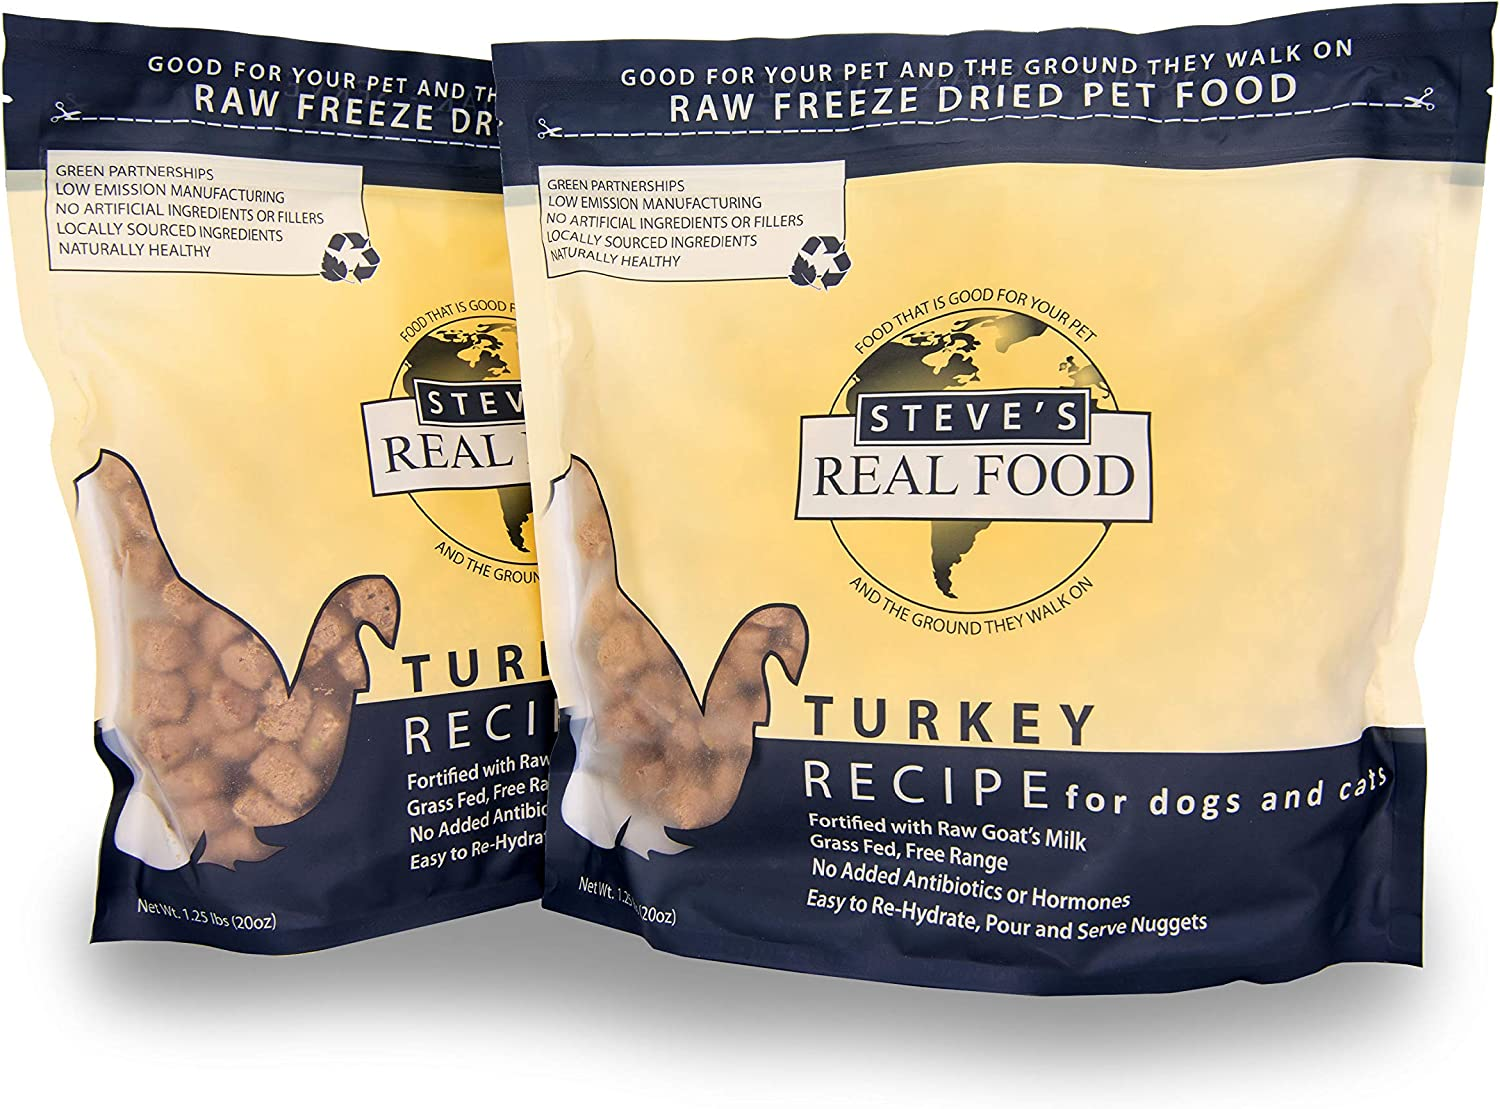 Steve's Real Food Freeze-Dried Raw Food Diet for Dogs and Cats, 2-Pack, Turkey Recipe, 1.25 lbs in Each Bag, Made in The USA, Pour and Serve Nuggets, Grass Fed & Free Range